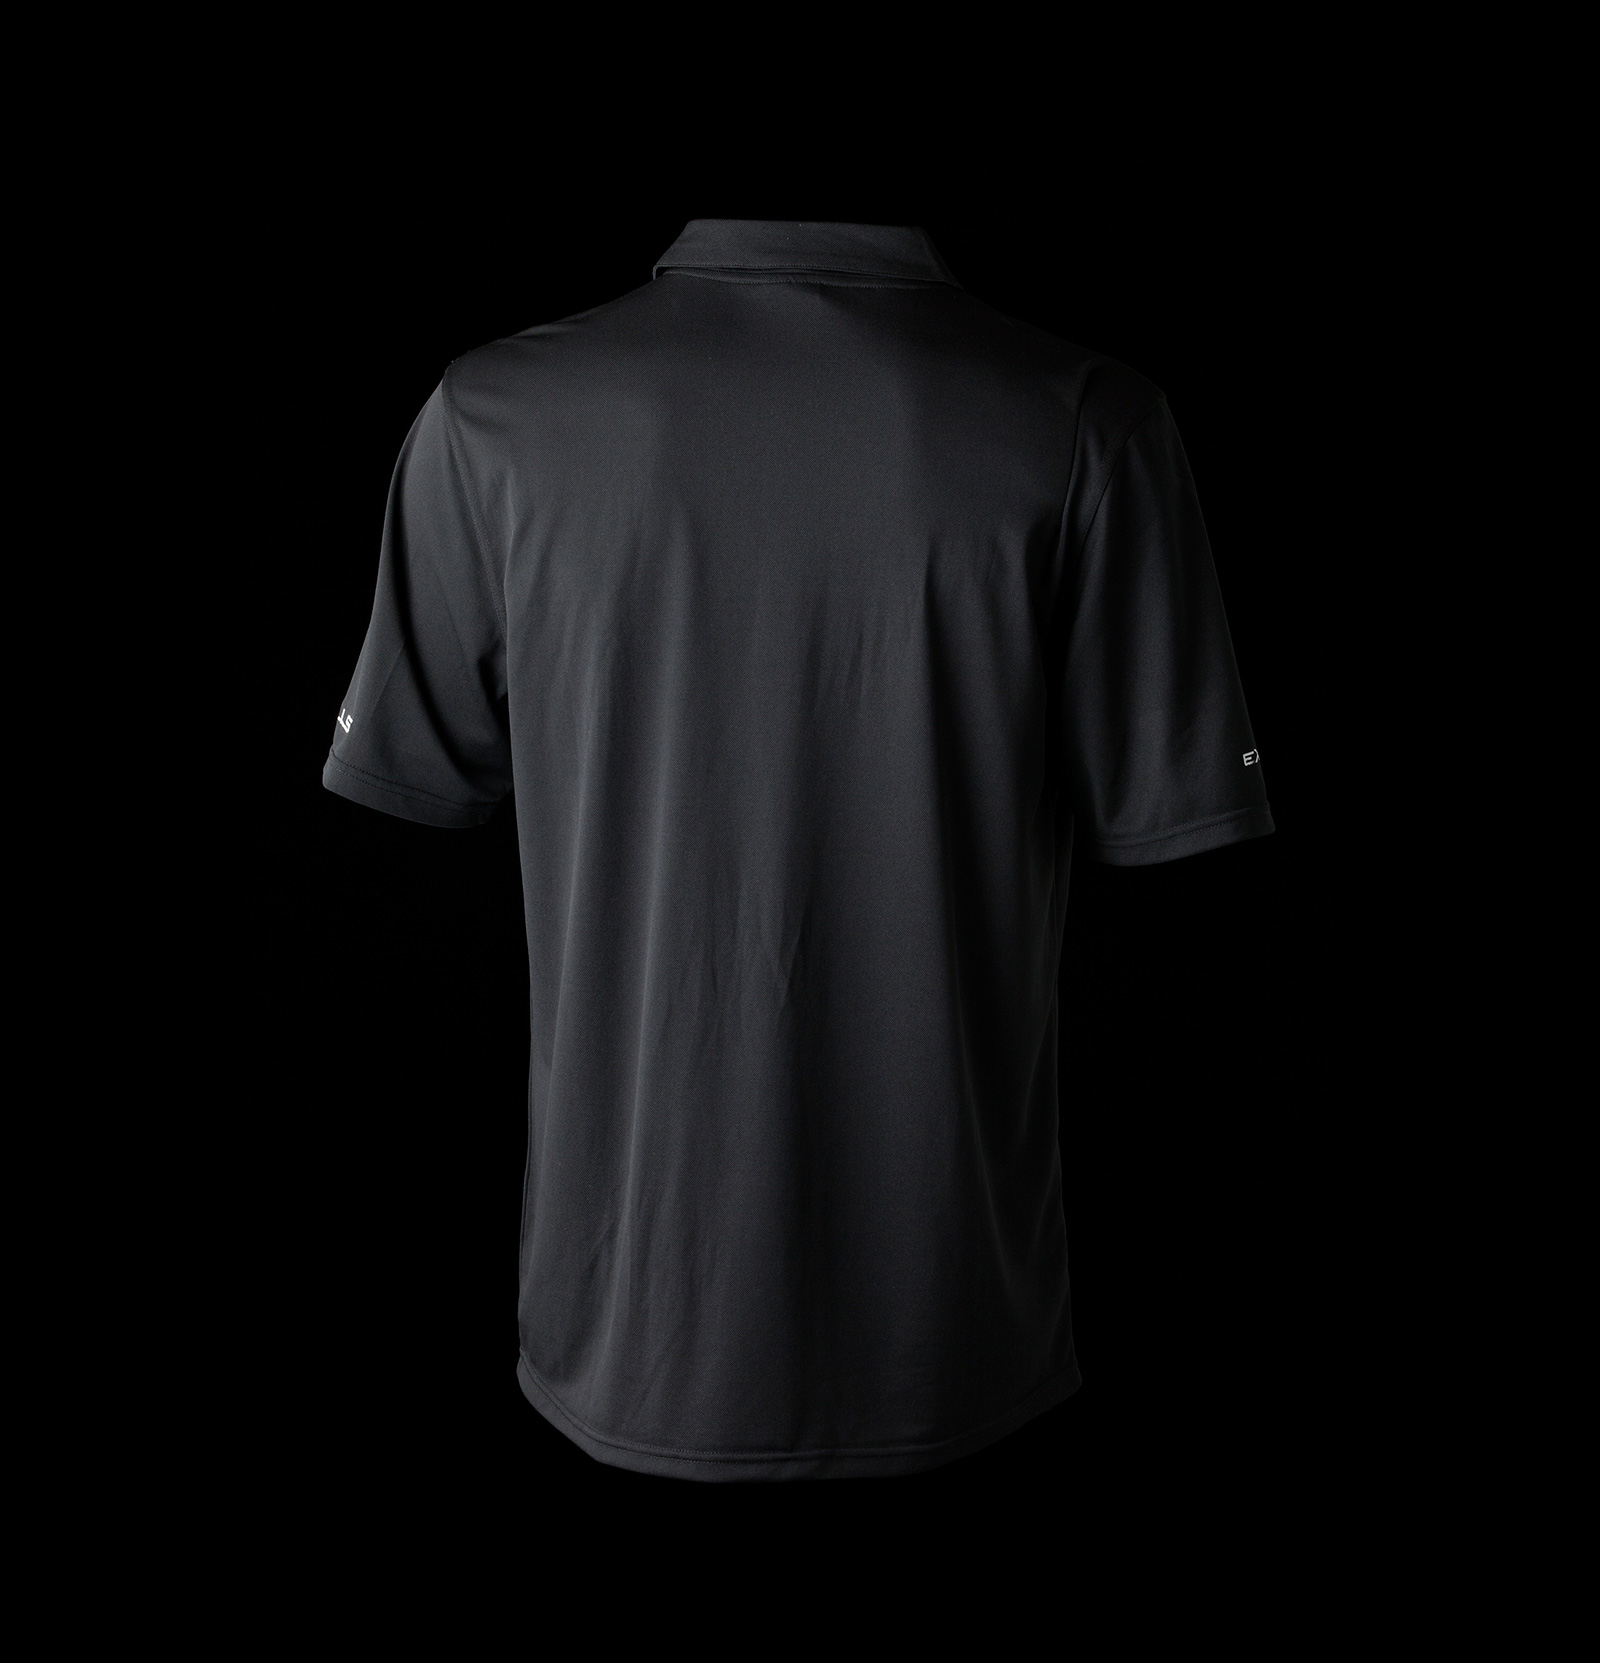 Excel-Polo-Shirt-Promo-39